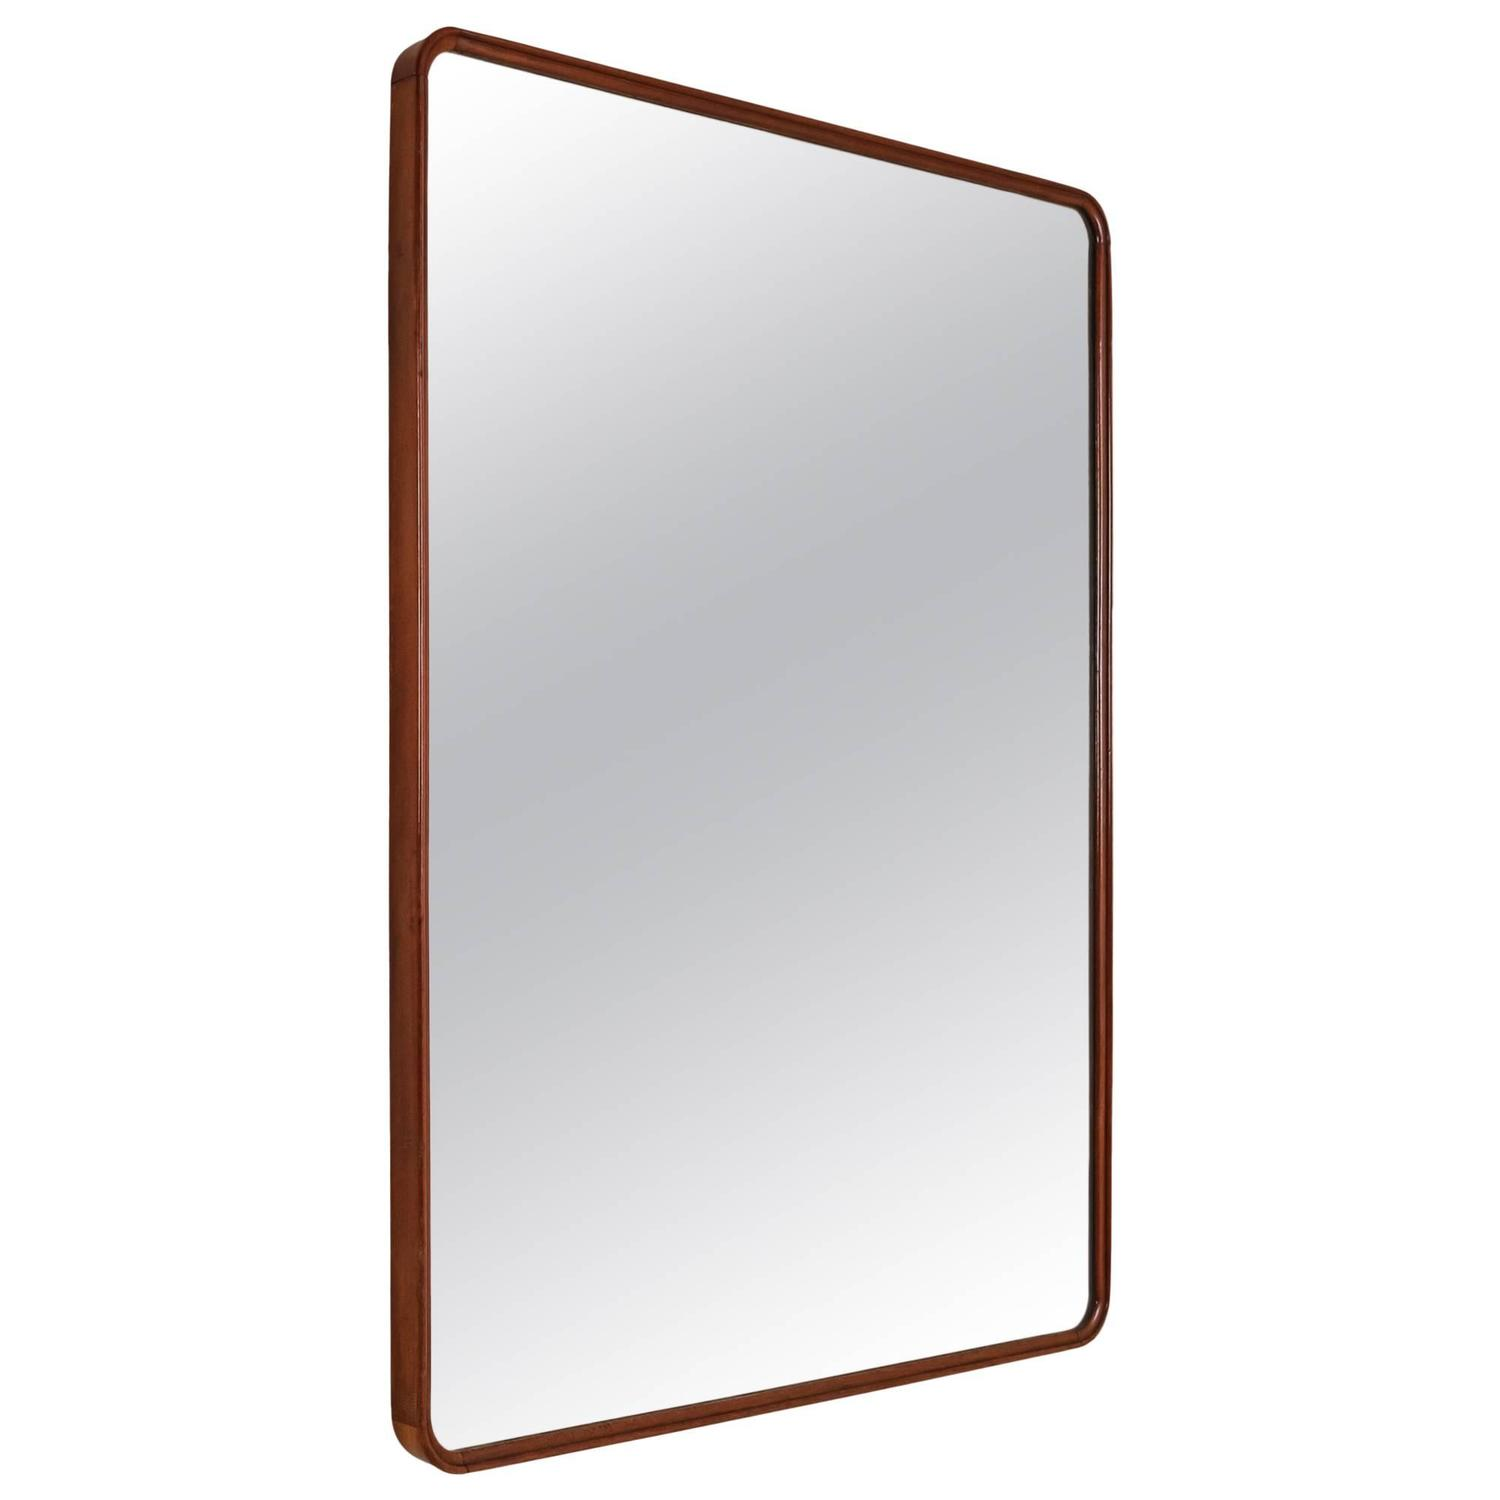 Extra large rectangular wall mirror with mahogany frame for Extra large mirrors